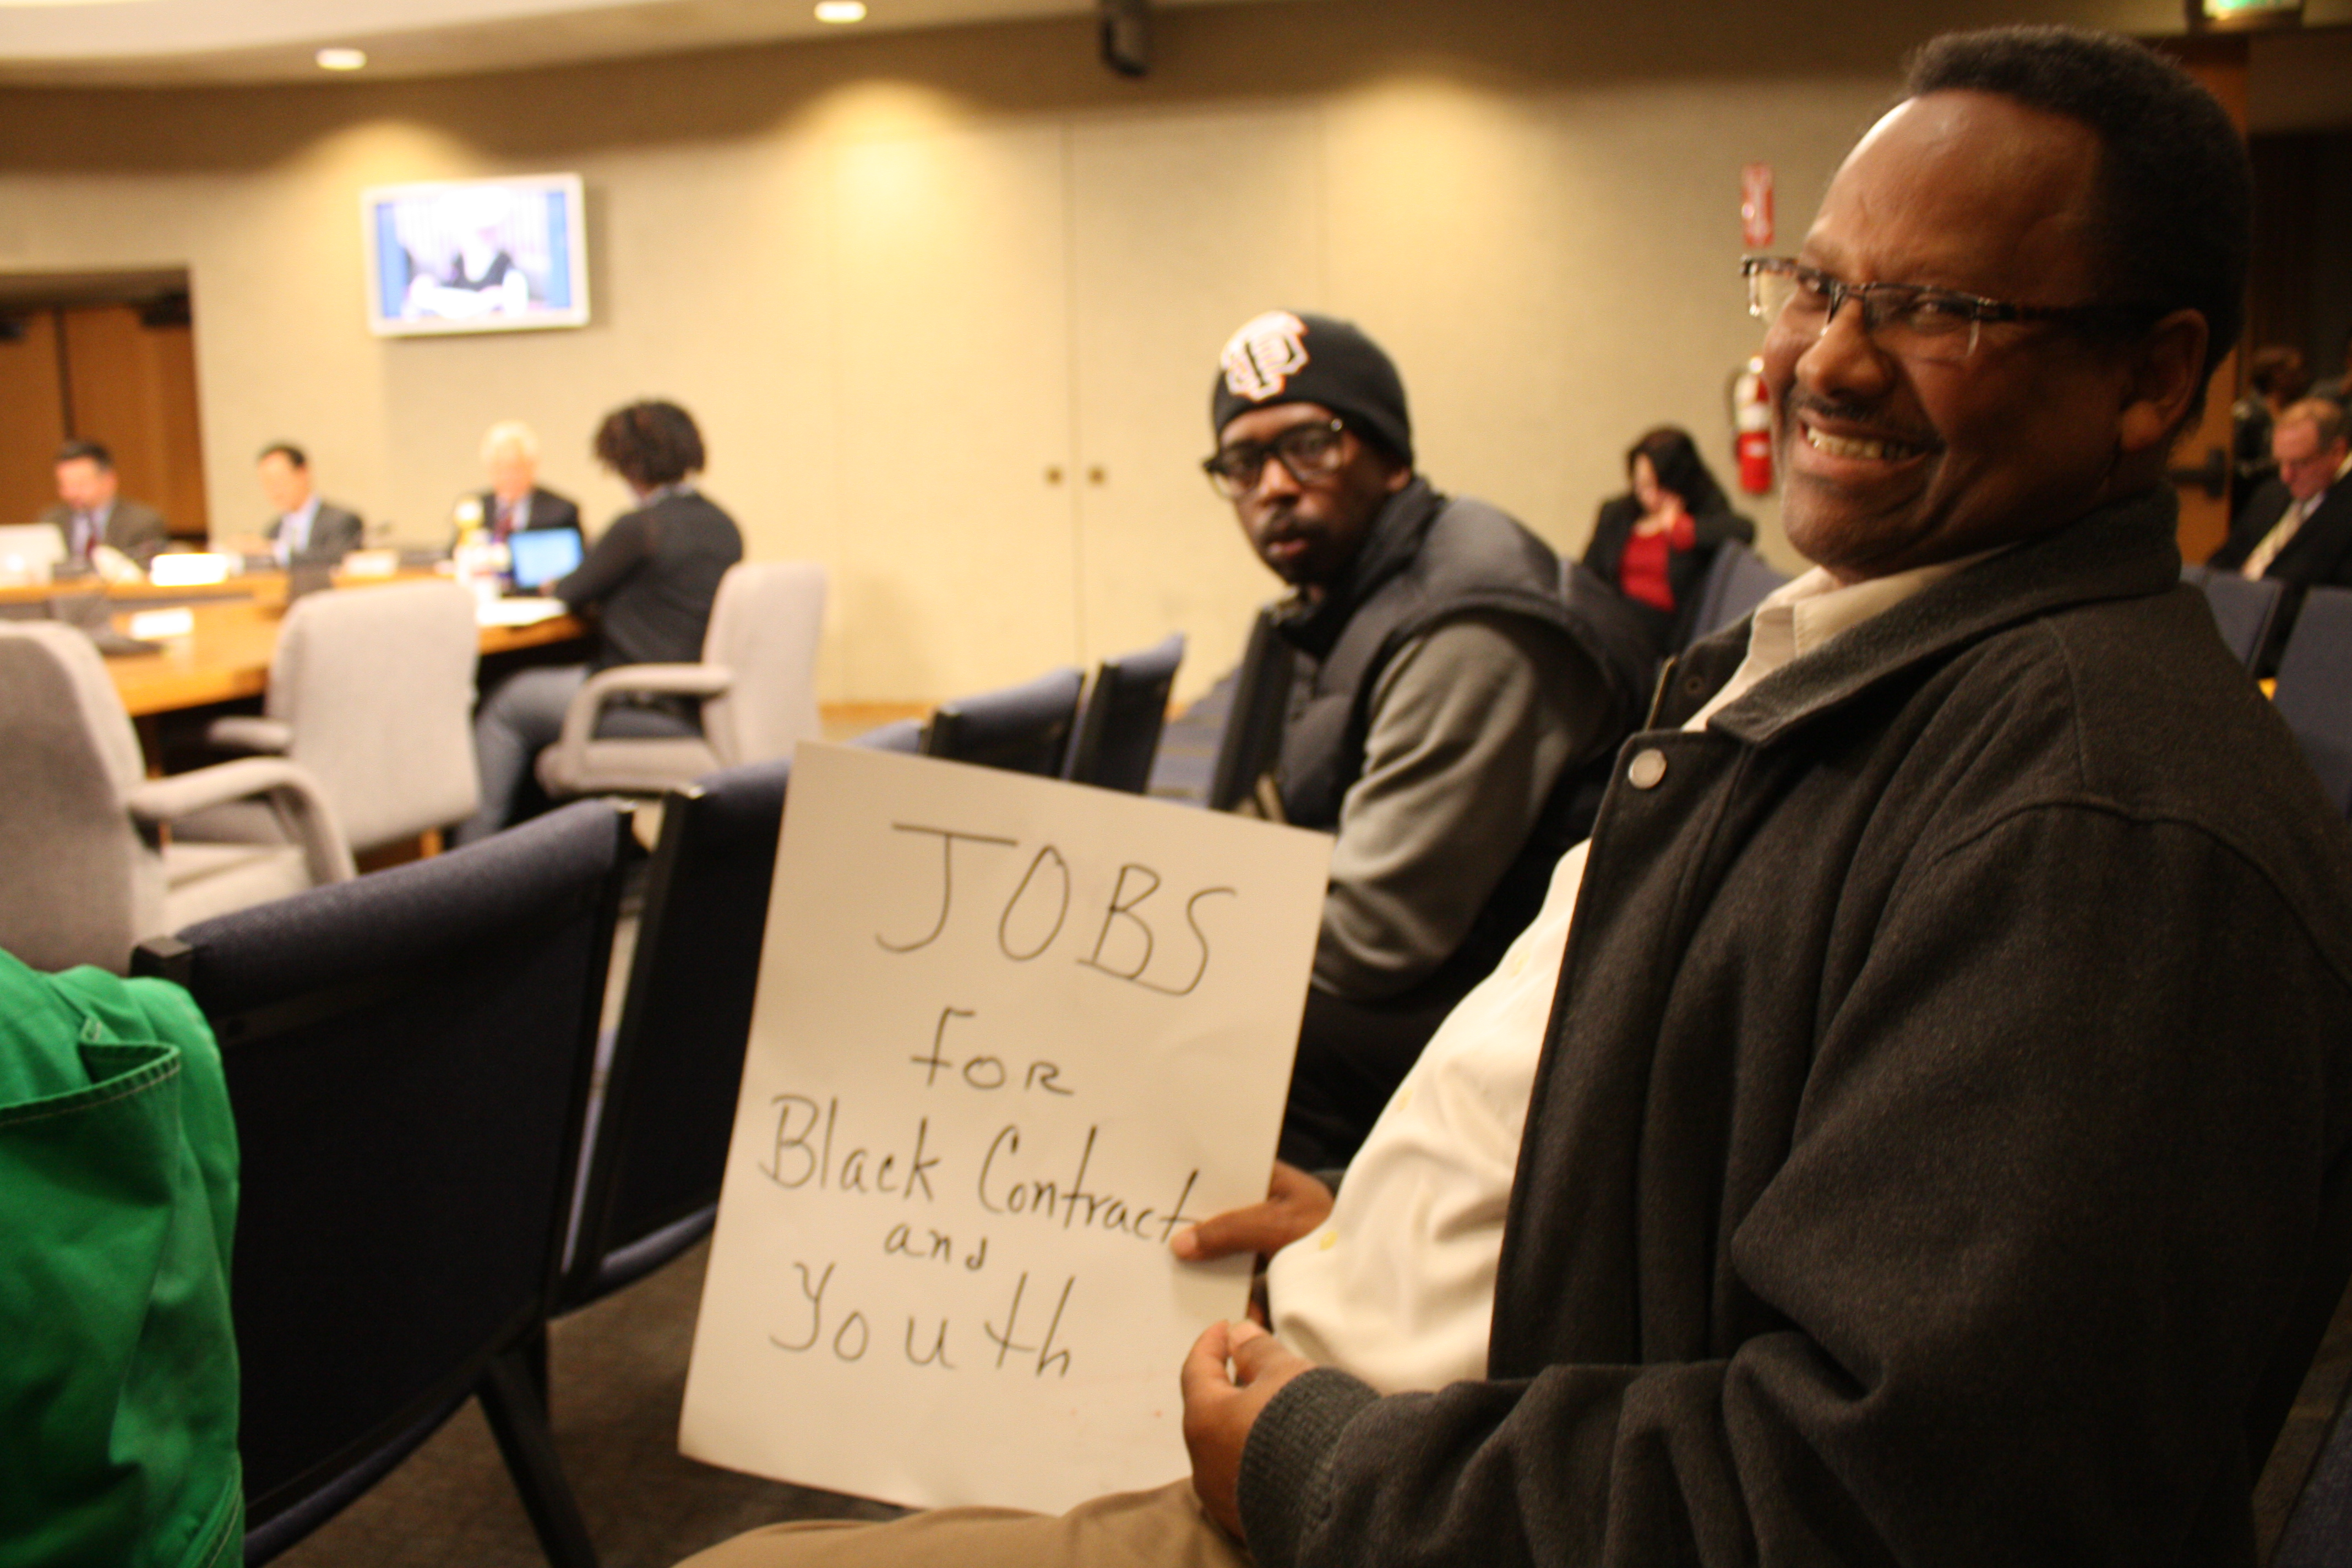 SF School Board re Willie Brown school Kevin Epps, Mike Brown 'Jobs for Black contractors and youth' 021213 by Ken Johns